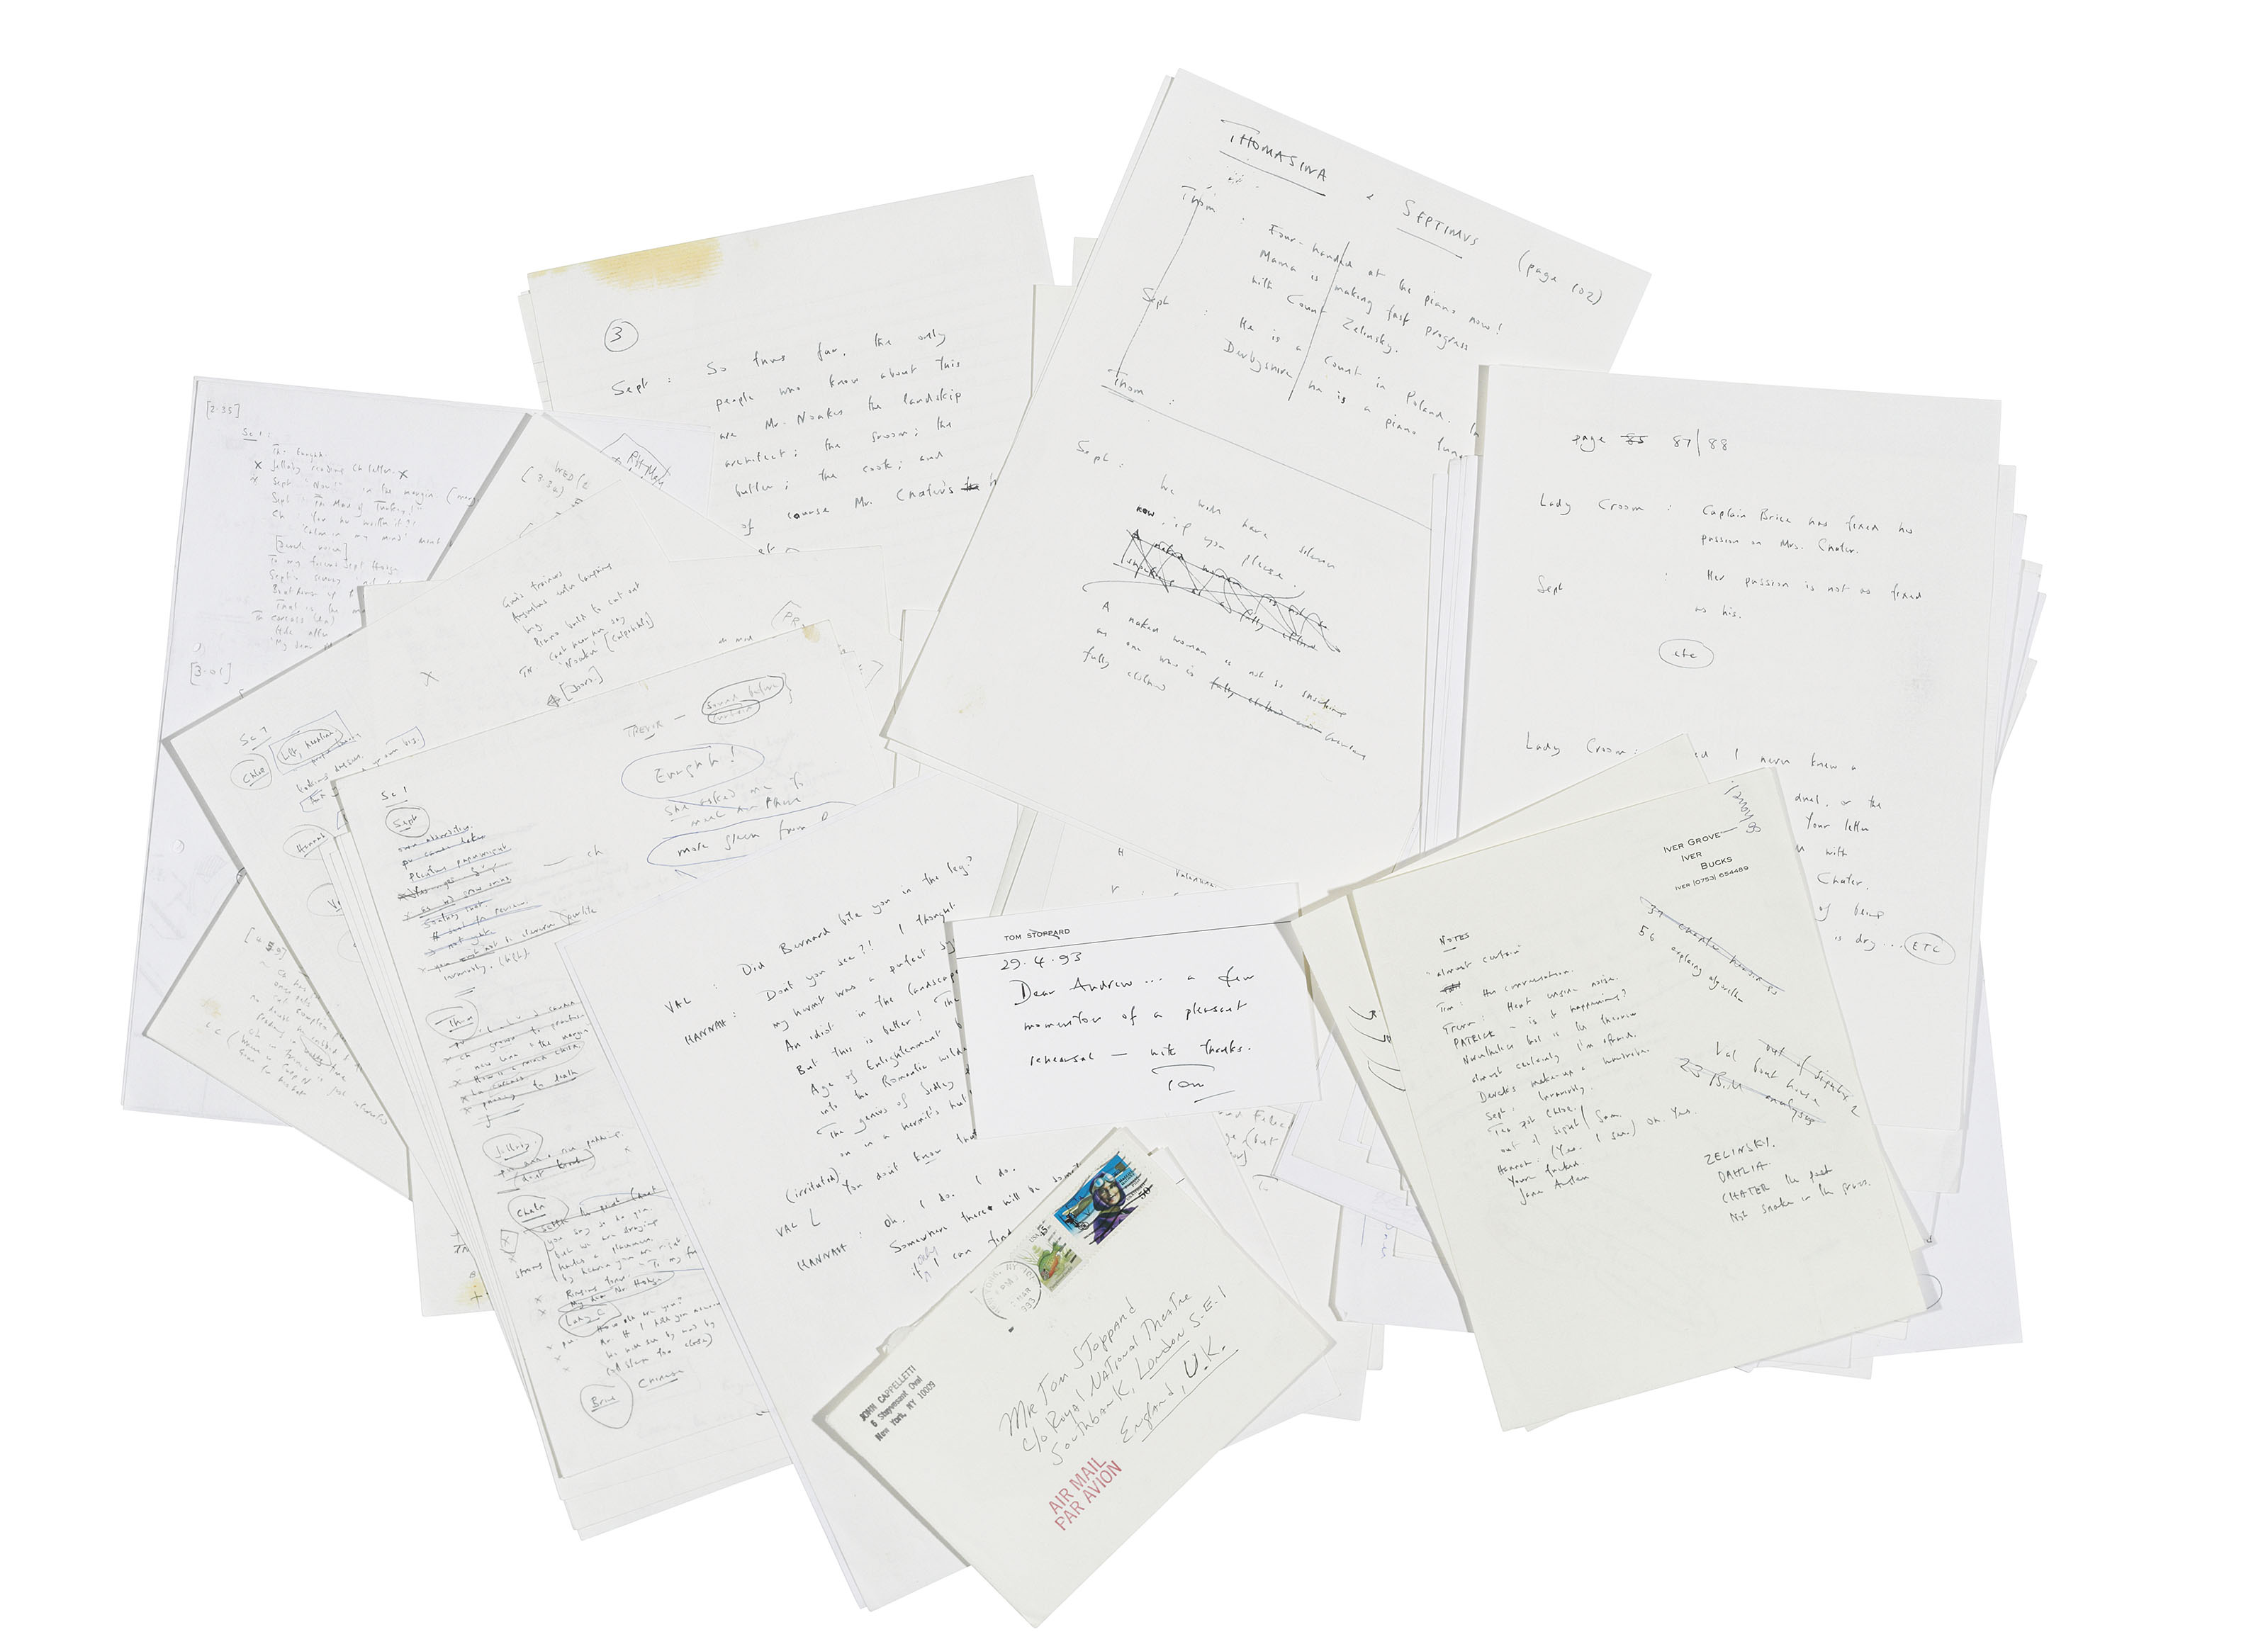 STOPPARD, Tom (b. 1937). Autograph manuscript rehearsal notes for the debut production of Arcadia at the National Theatre, n.p. [National Theatre, London], March 1993.